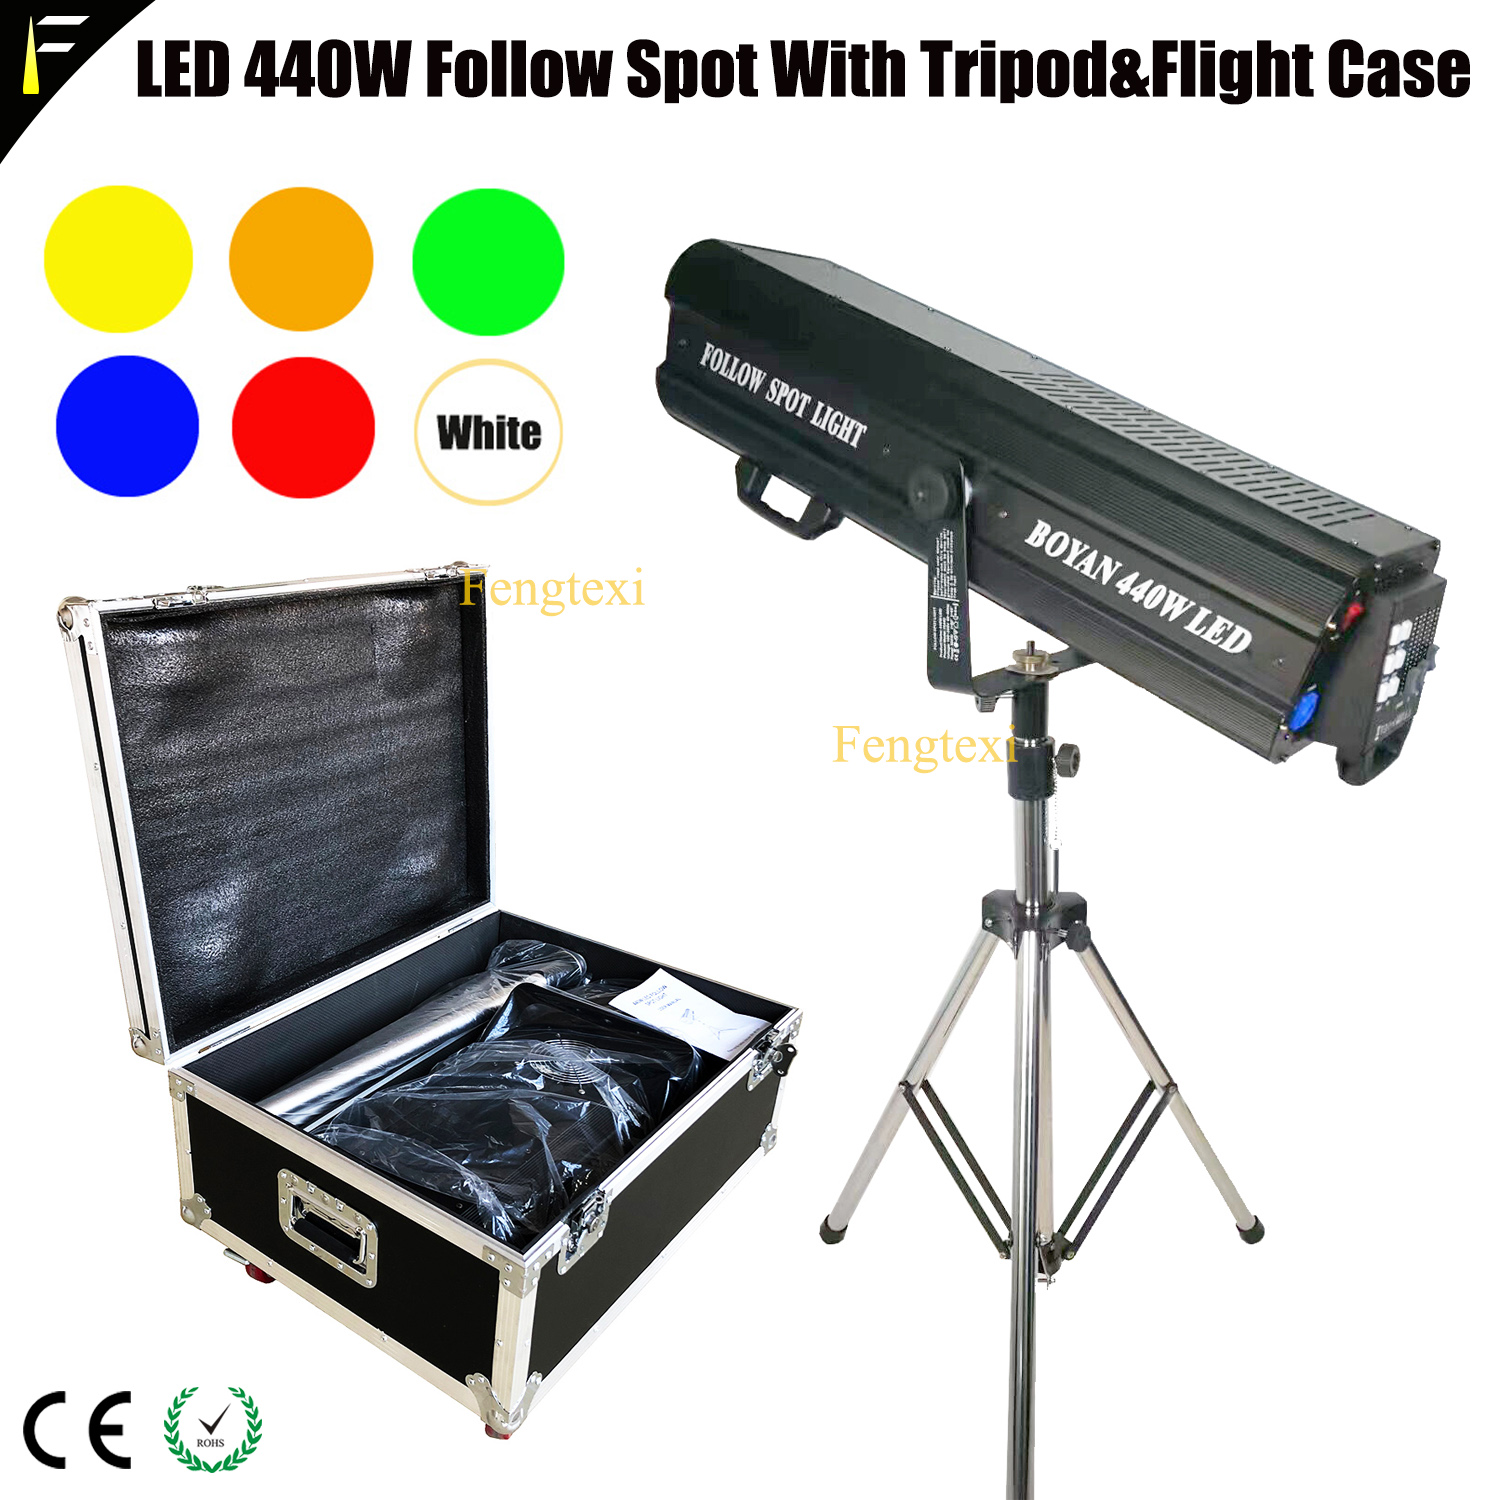 DMX512 440W LED Follow Spot Focus Light Followspot